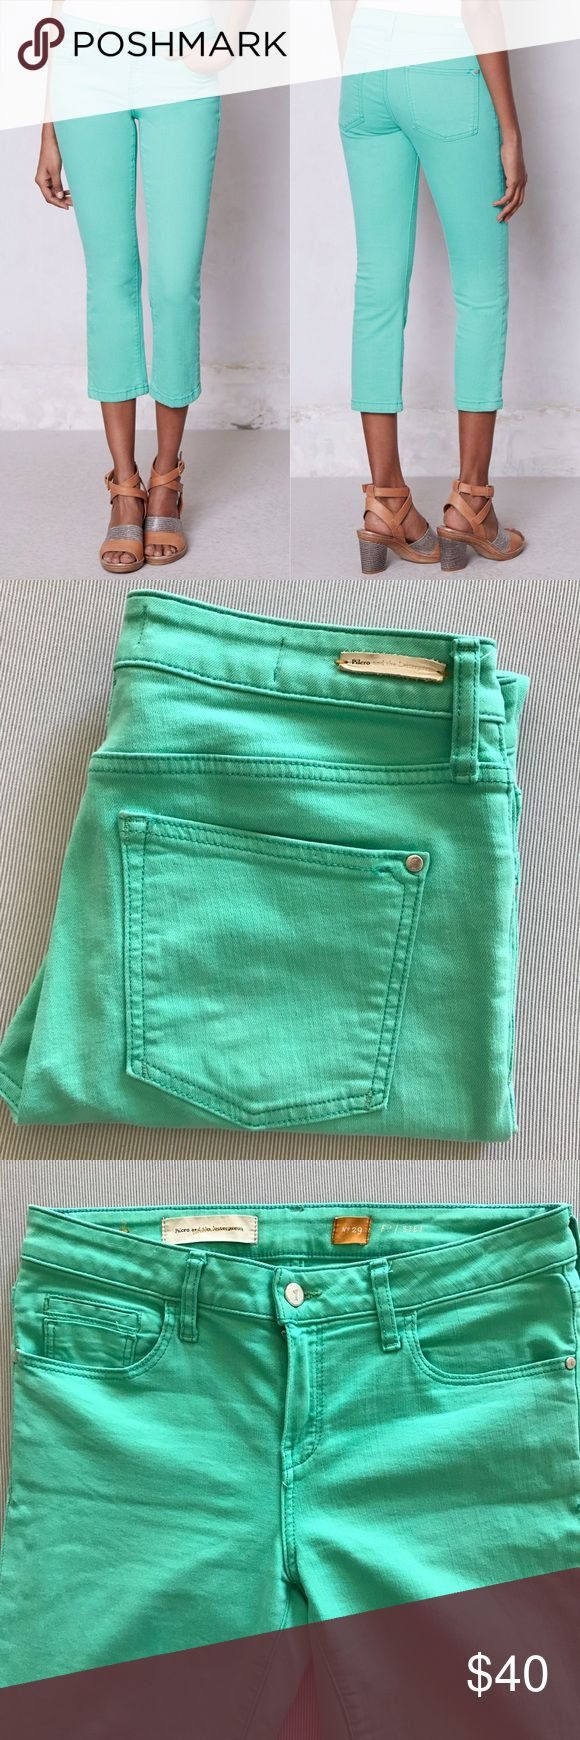 """Pilcro Stet Aqua Jeans In great used condition. Inseam is approx 25"""" Anthropologie Jeans"""